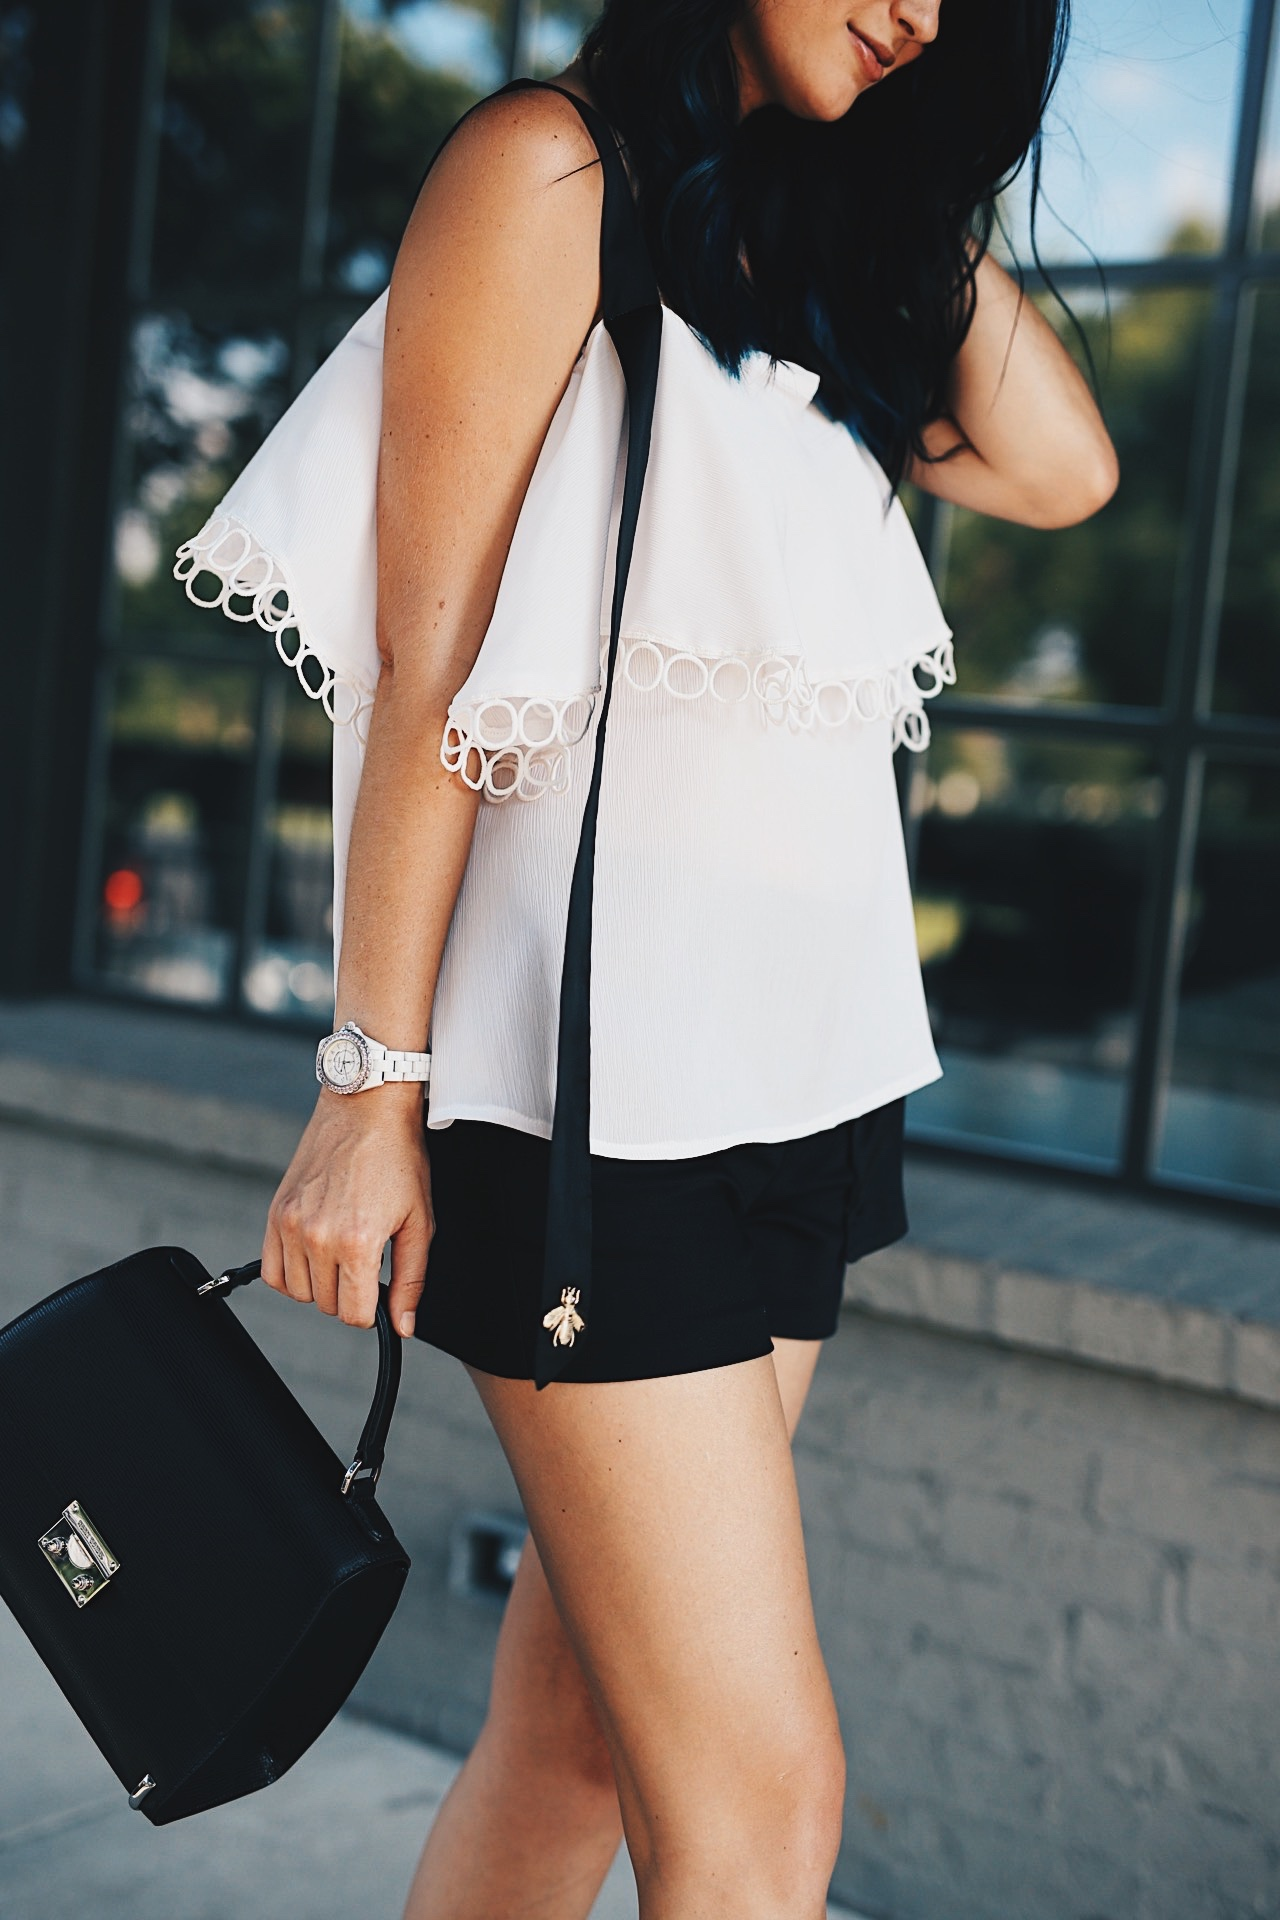 DTKAustin shares her love for black and white with this bee detailed top from Chicwish. Shoes from Splendid, Shorts from Alice & Olivia and bag from Henri Bendel. Click for more details and photos.    how to style a cold shoulder top   how to wear a cold shoulder top   cold shoulder top style tips   summer fashion tips   summer outfit ideas   summer style tips   what to wear for summer   warm weather fashion   fashion for summer   style tips for summer   outfit ideas for summer    Dressed to Kill